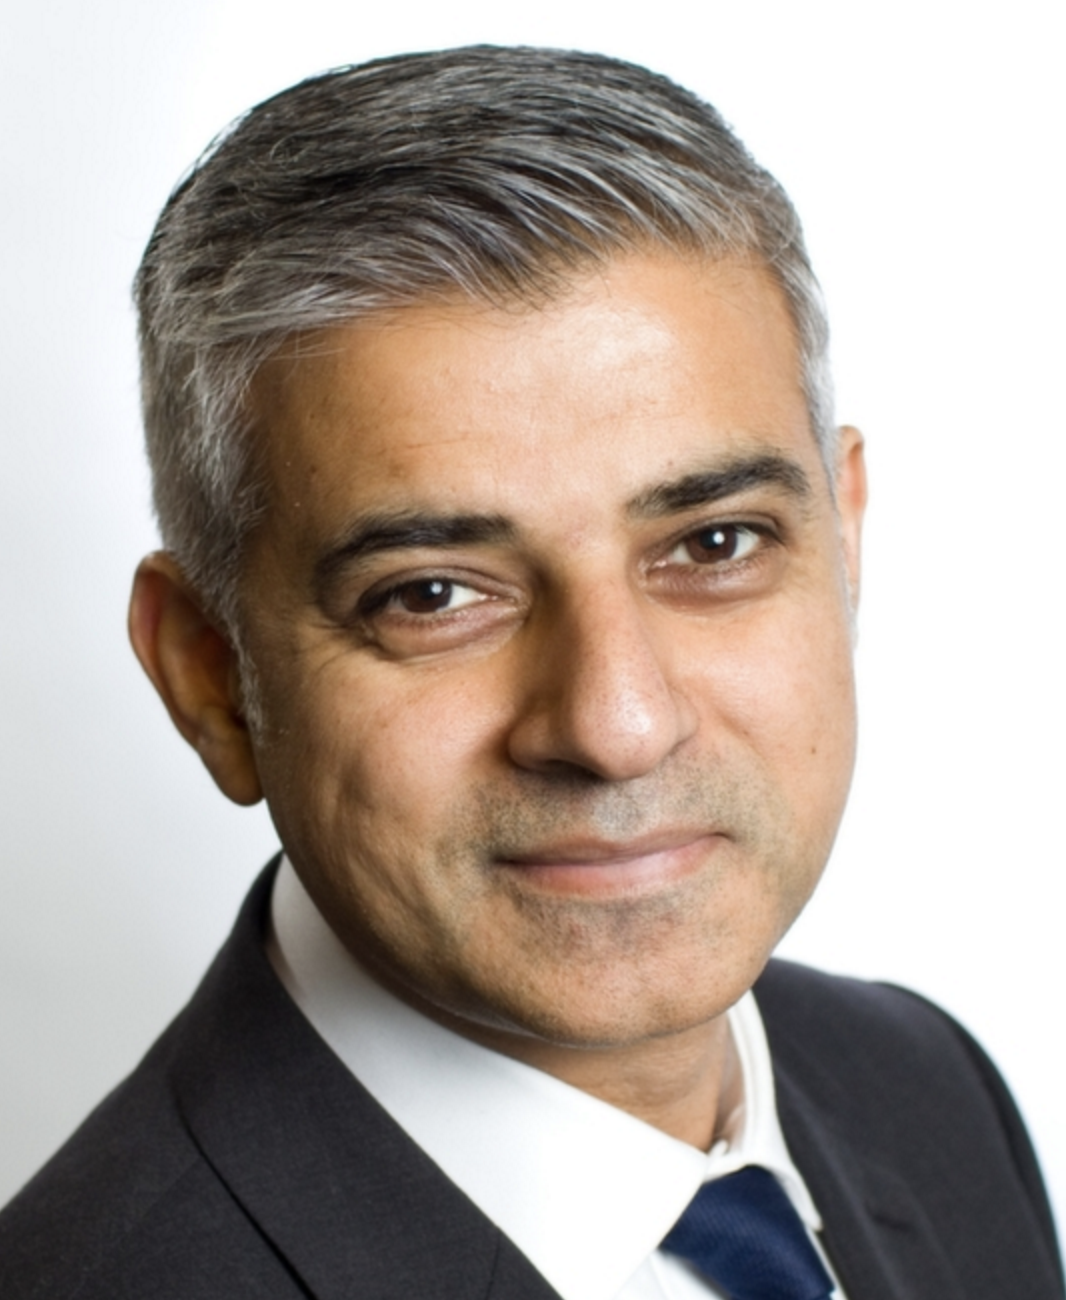 Londons neste ordfører, Sadiq Khan (Labour Party)?